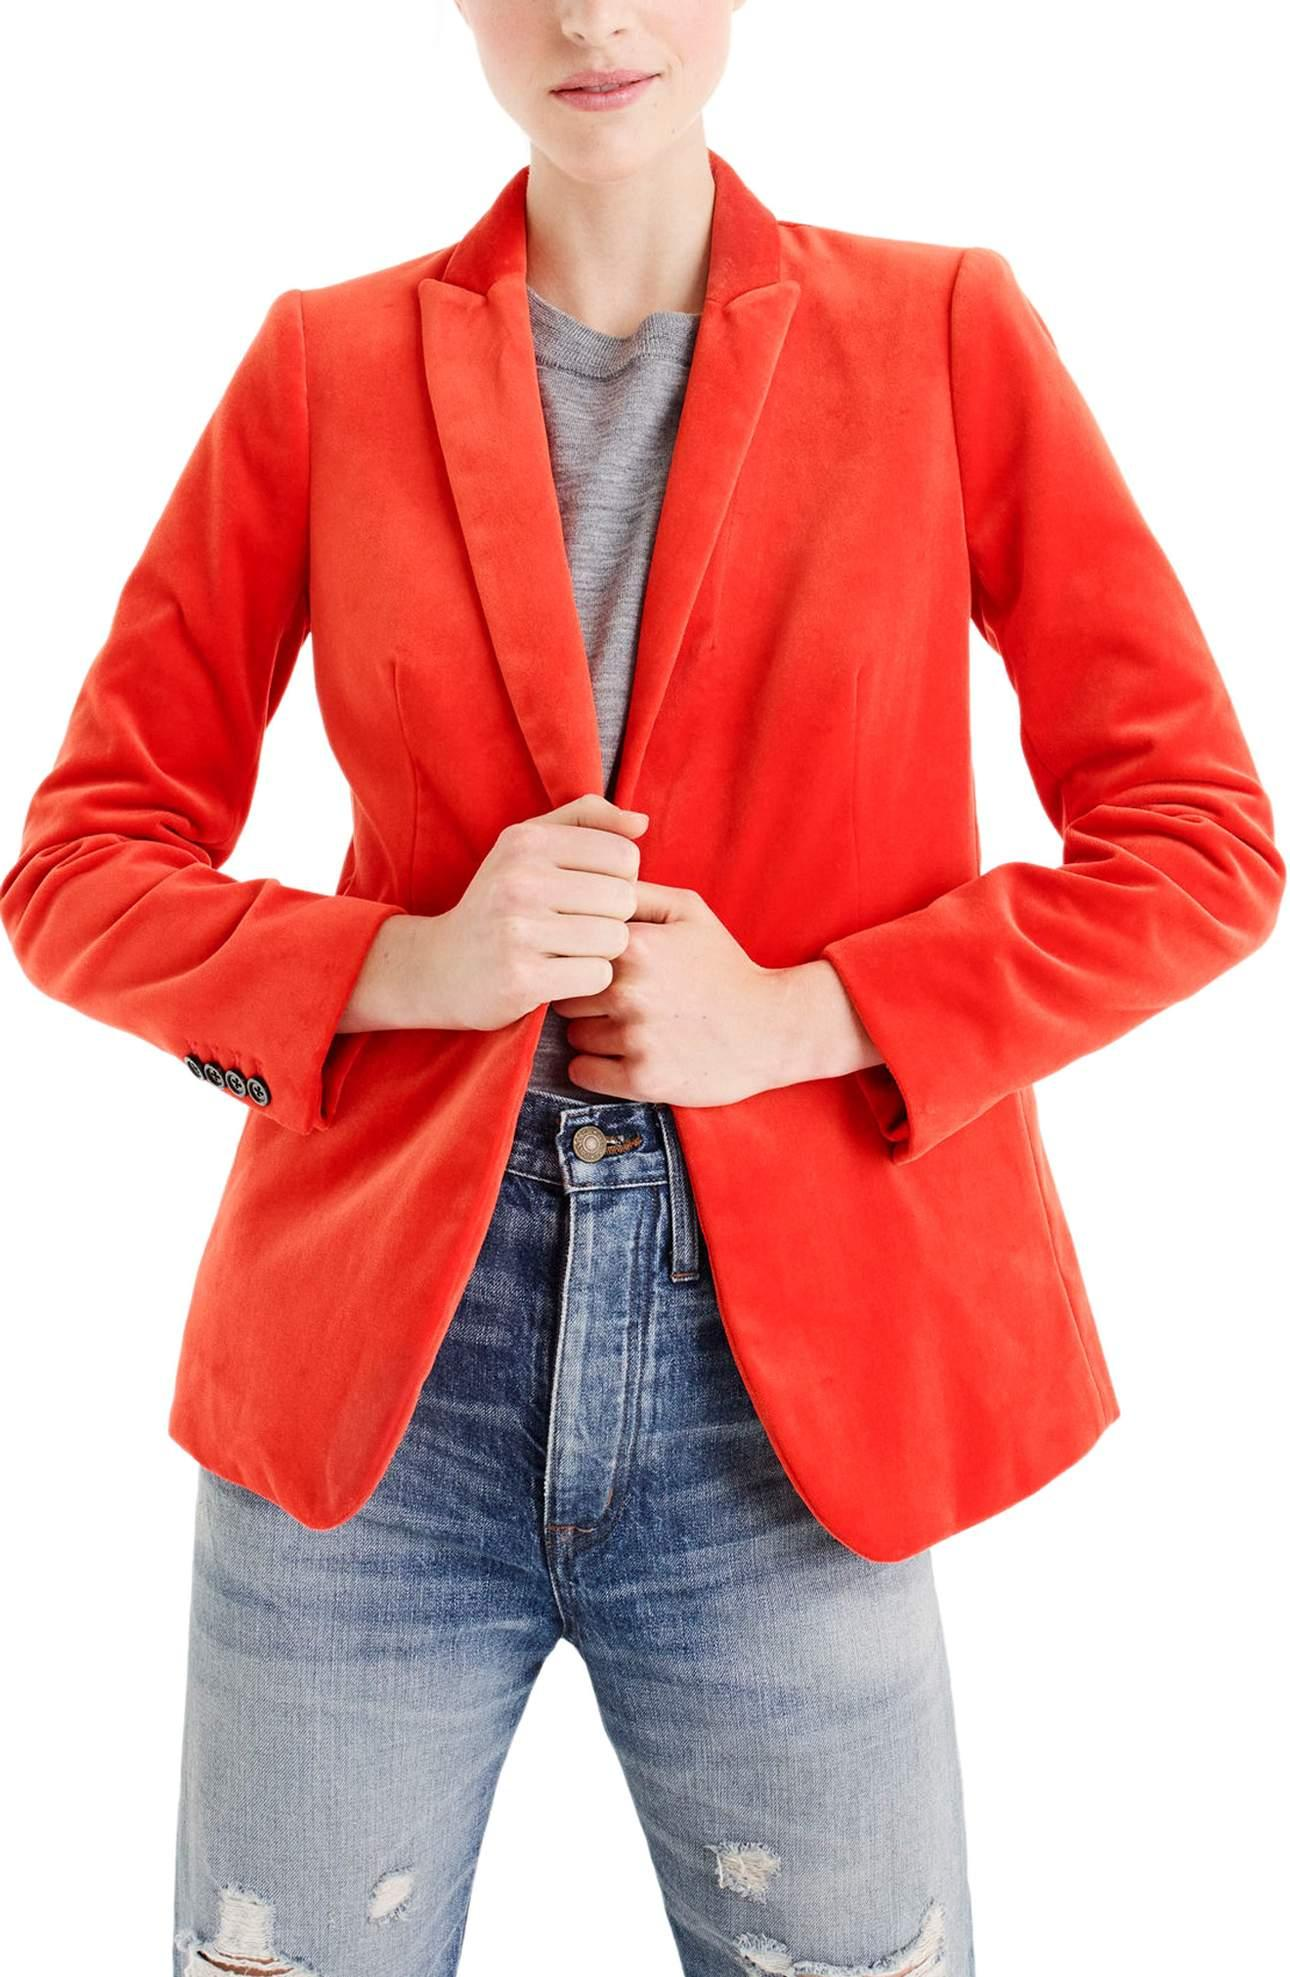 <p>J.Crew Parke Velvet Blazer - $168. OMG, YES! I'm obsessed with this.{&amp;nbsp;}{&amp;nbsp;}J.Crew's Parke blazer, available in four shades of luxurious velvet, is the perfect layering piece for everything - work or play. (Image: Nordstrom){&amp;nbsp;}</p><p></p>